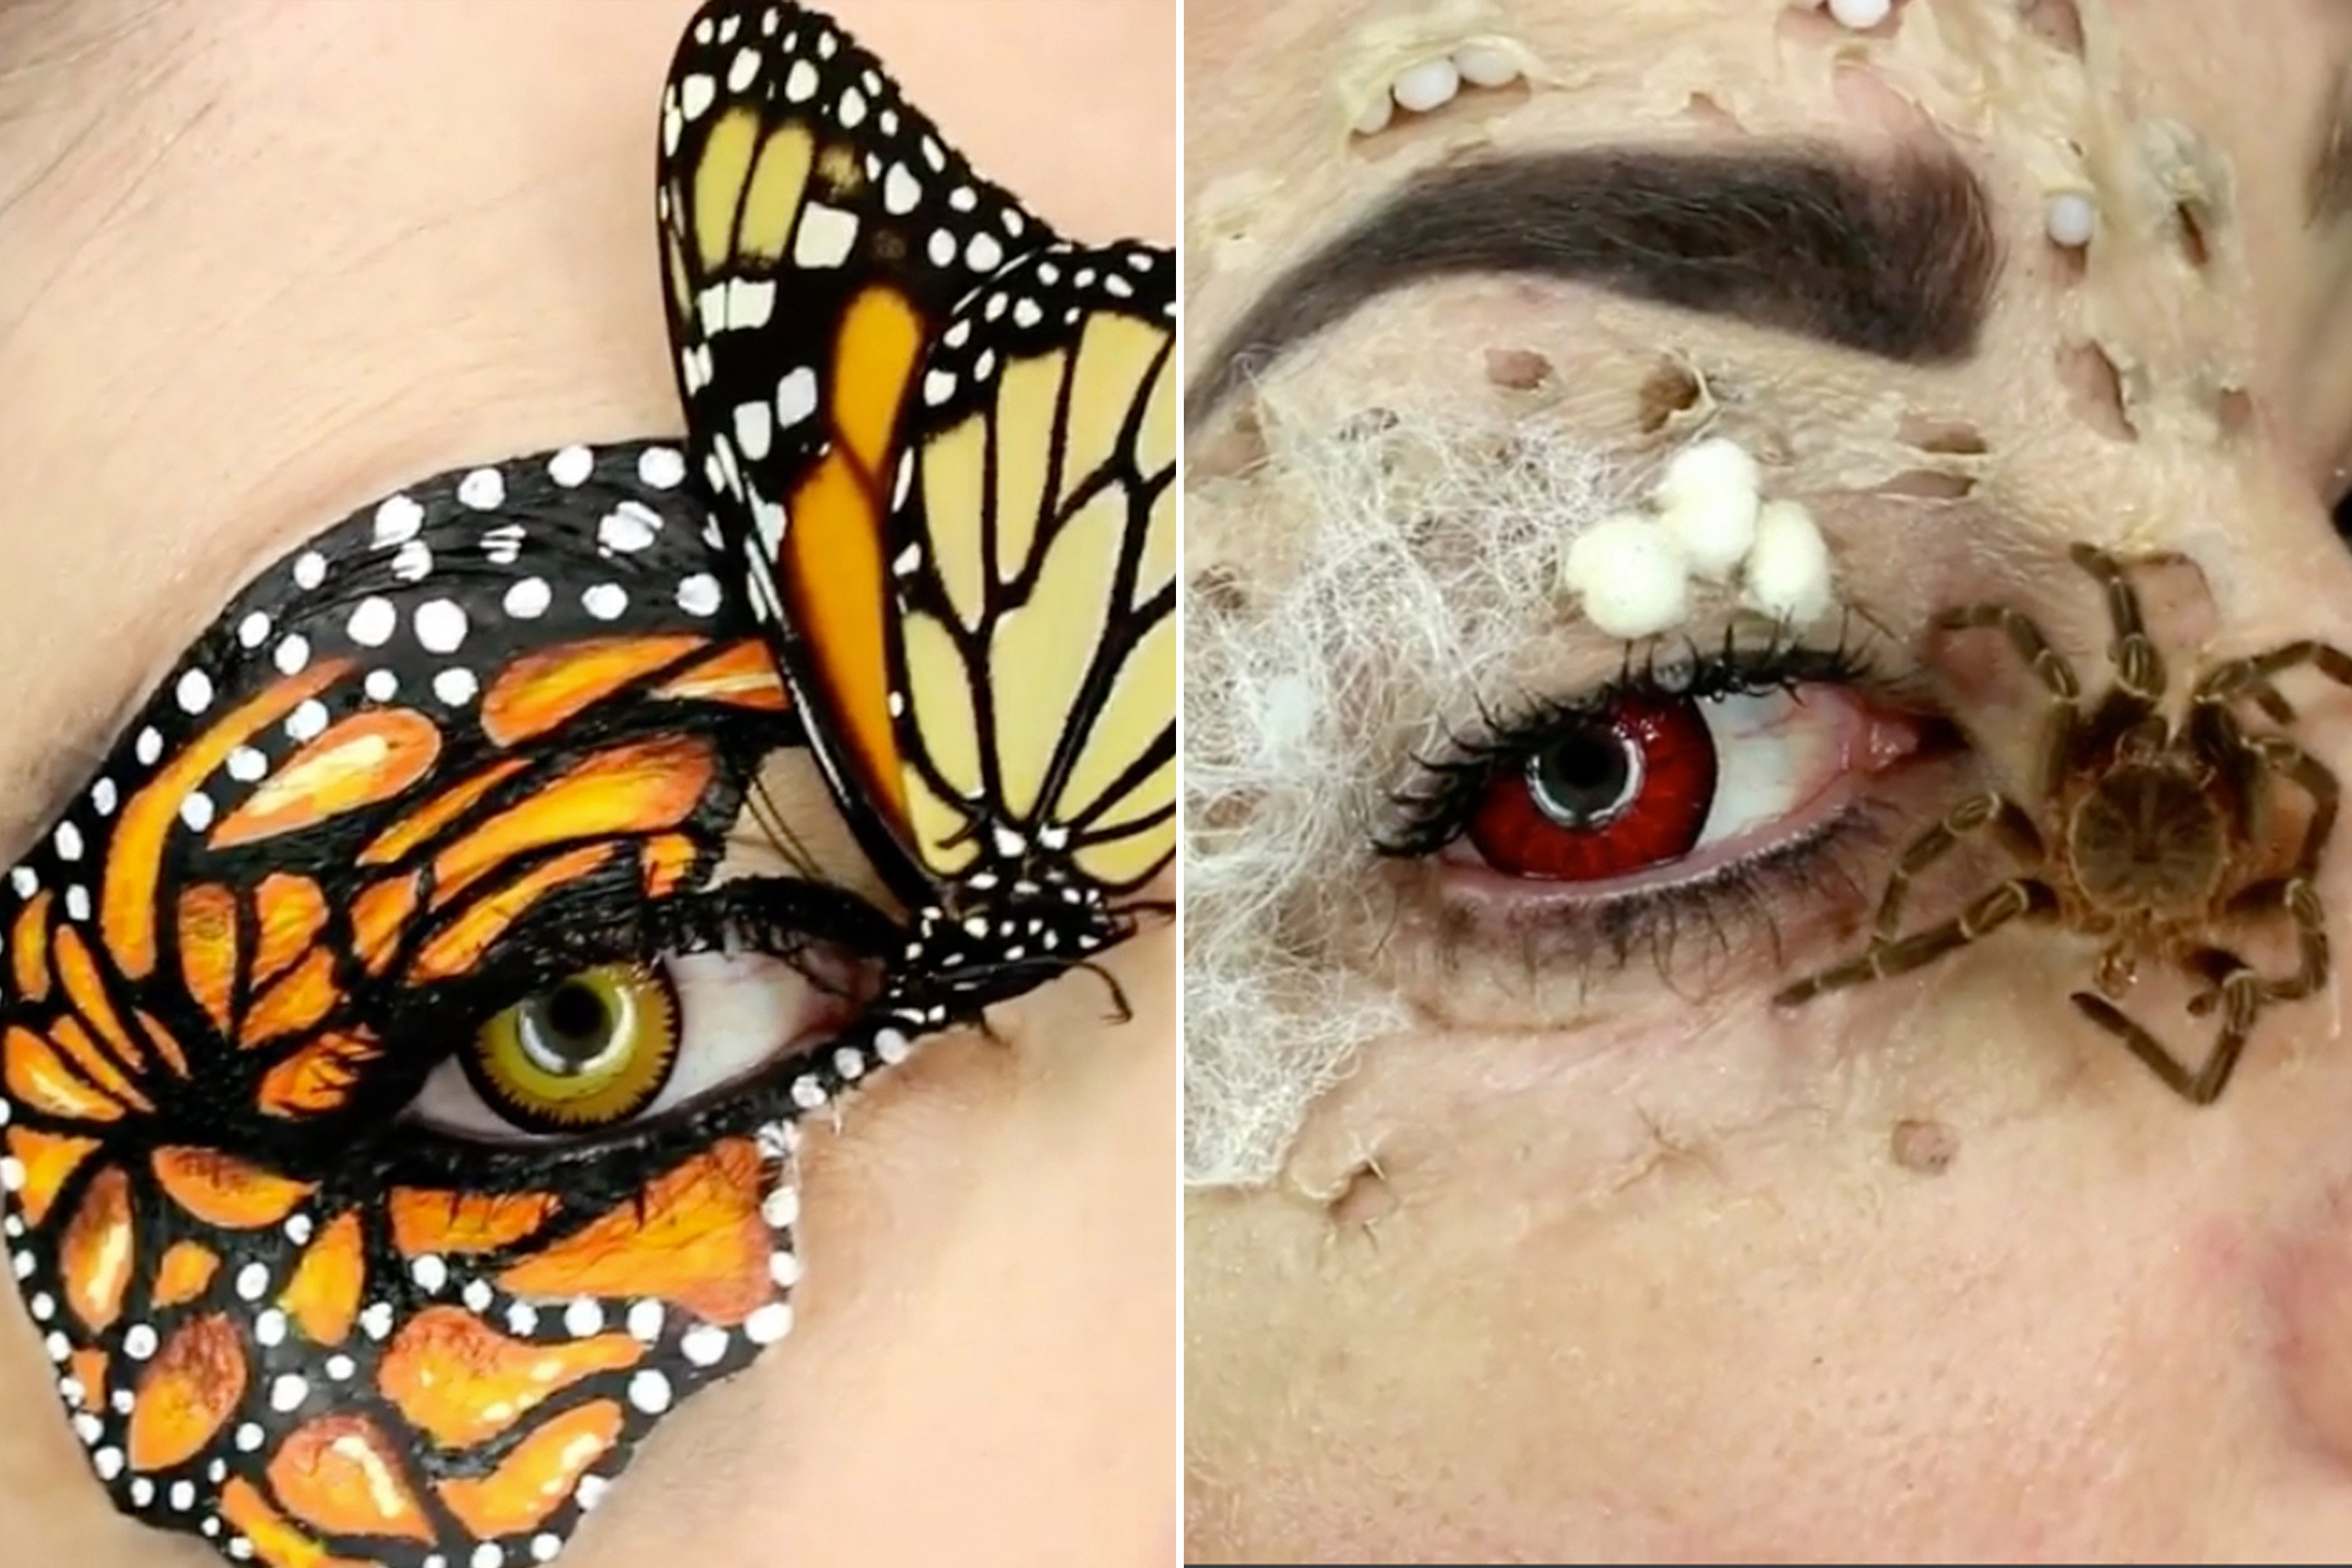 Makeup artist uses real dead insects on her face